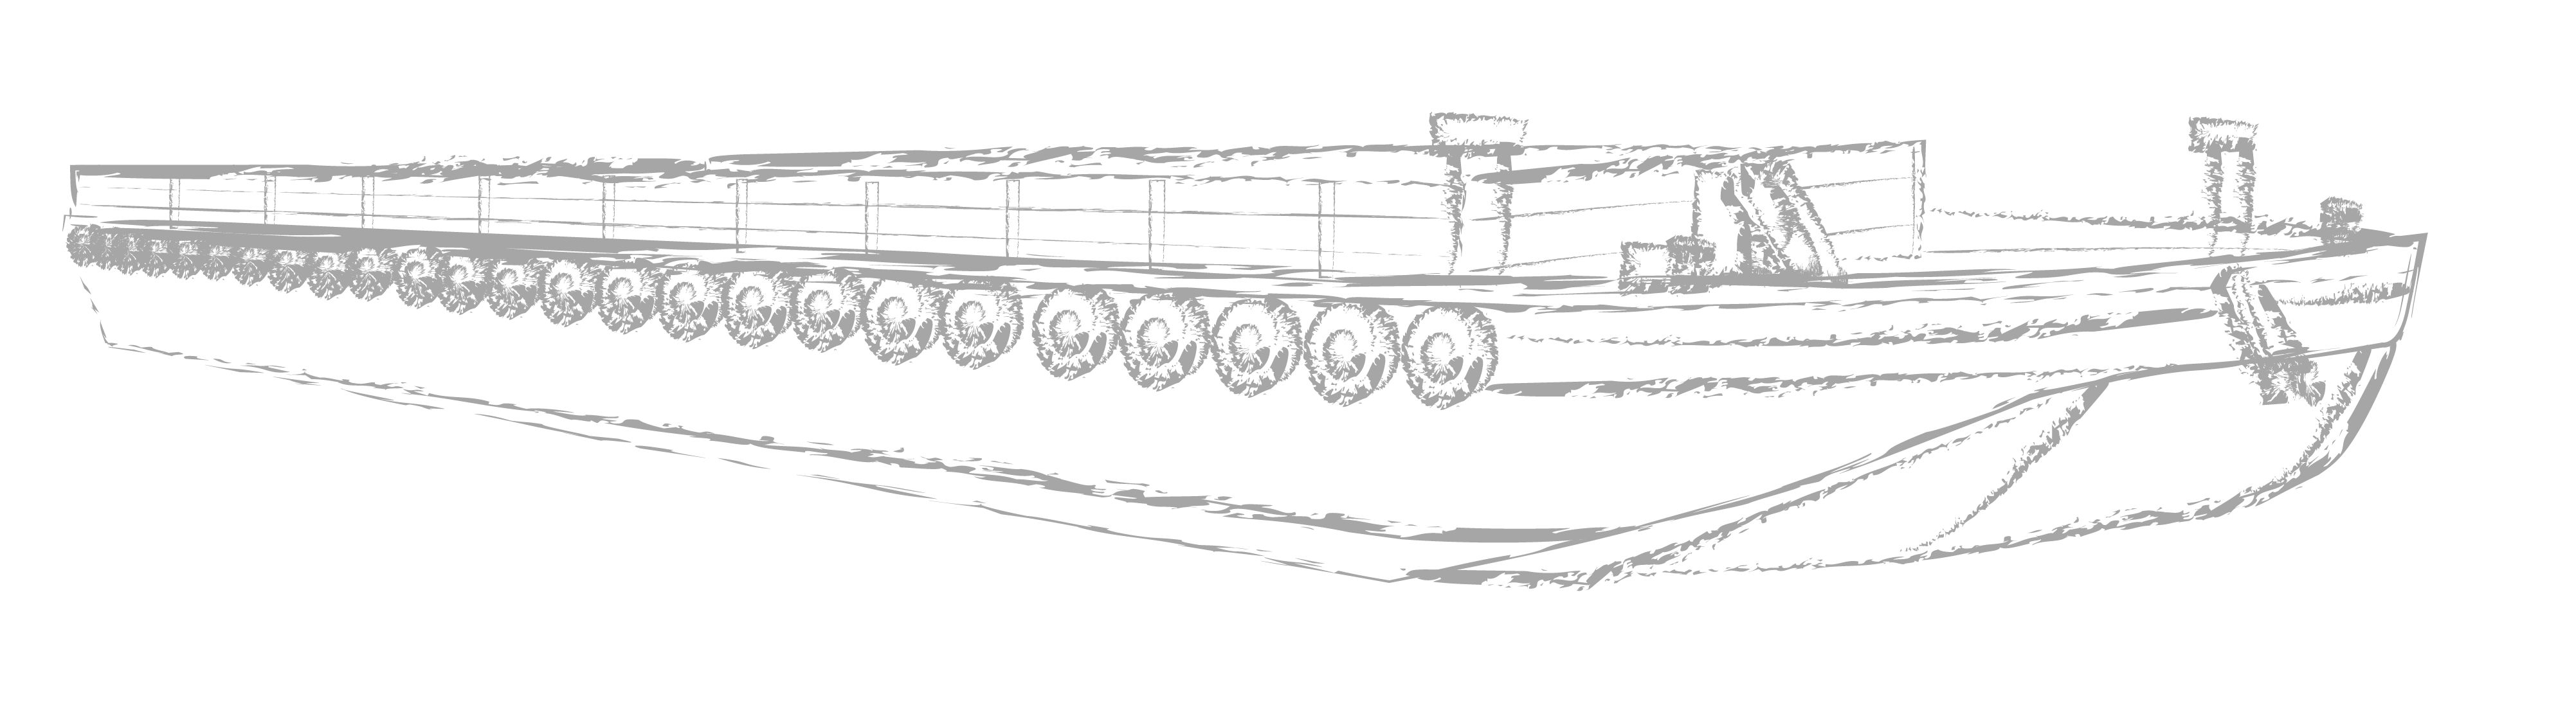 Barges-01